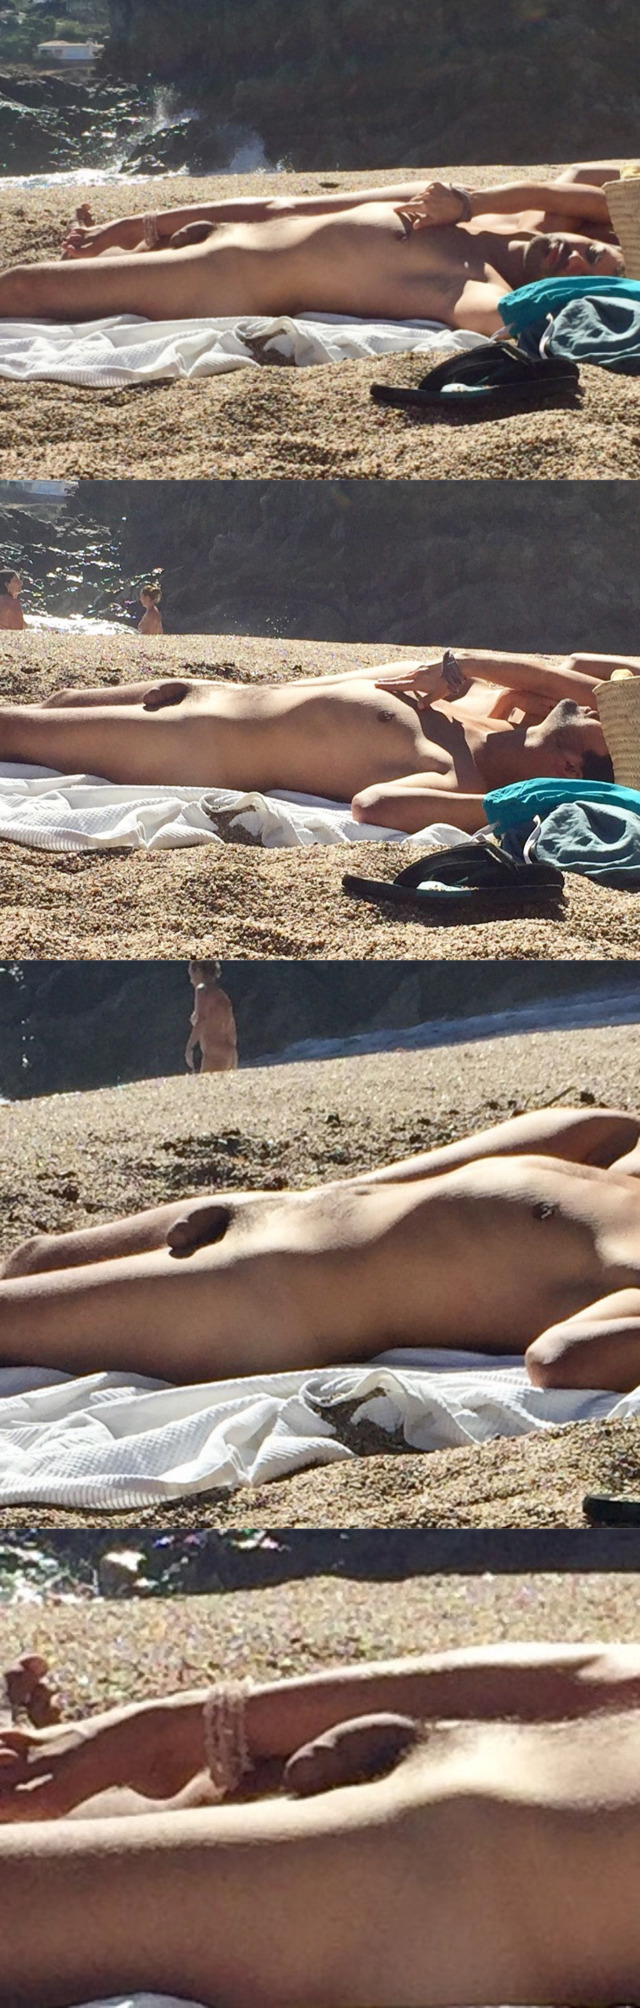 Something Nudist beach spycam